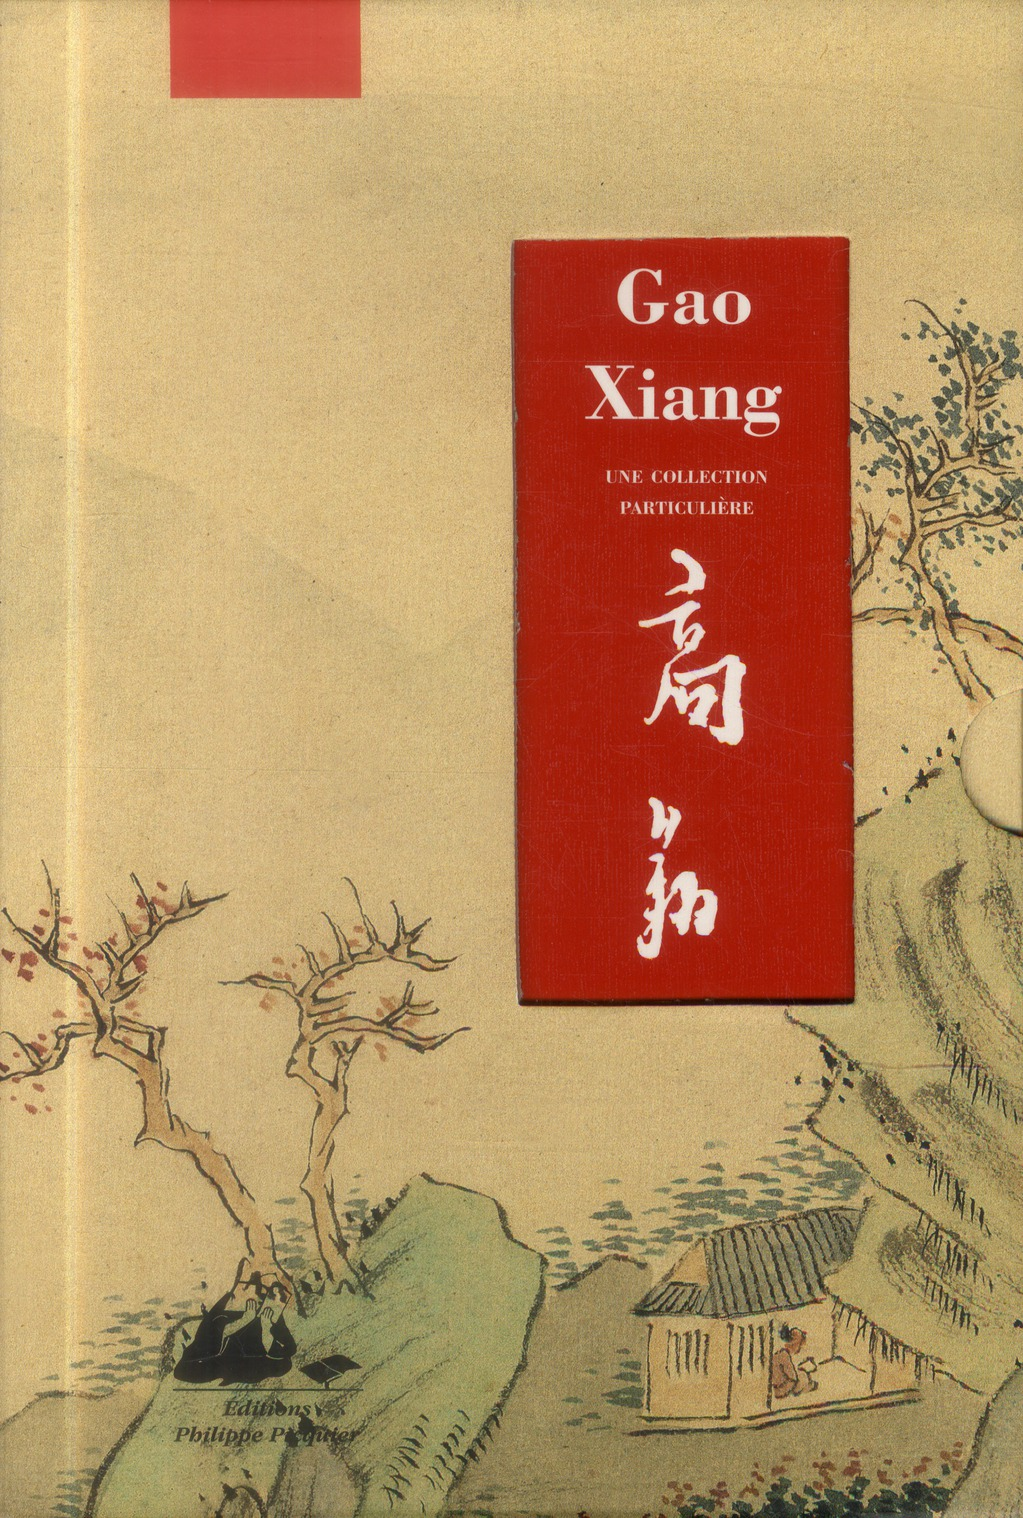 GAO XIANG - HUANG DING - UNE COLLECTION PARTICULIERE